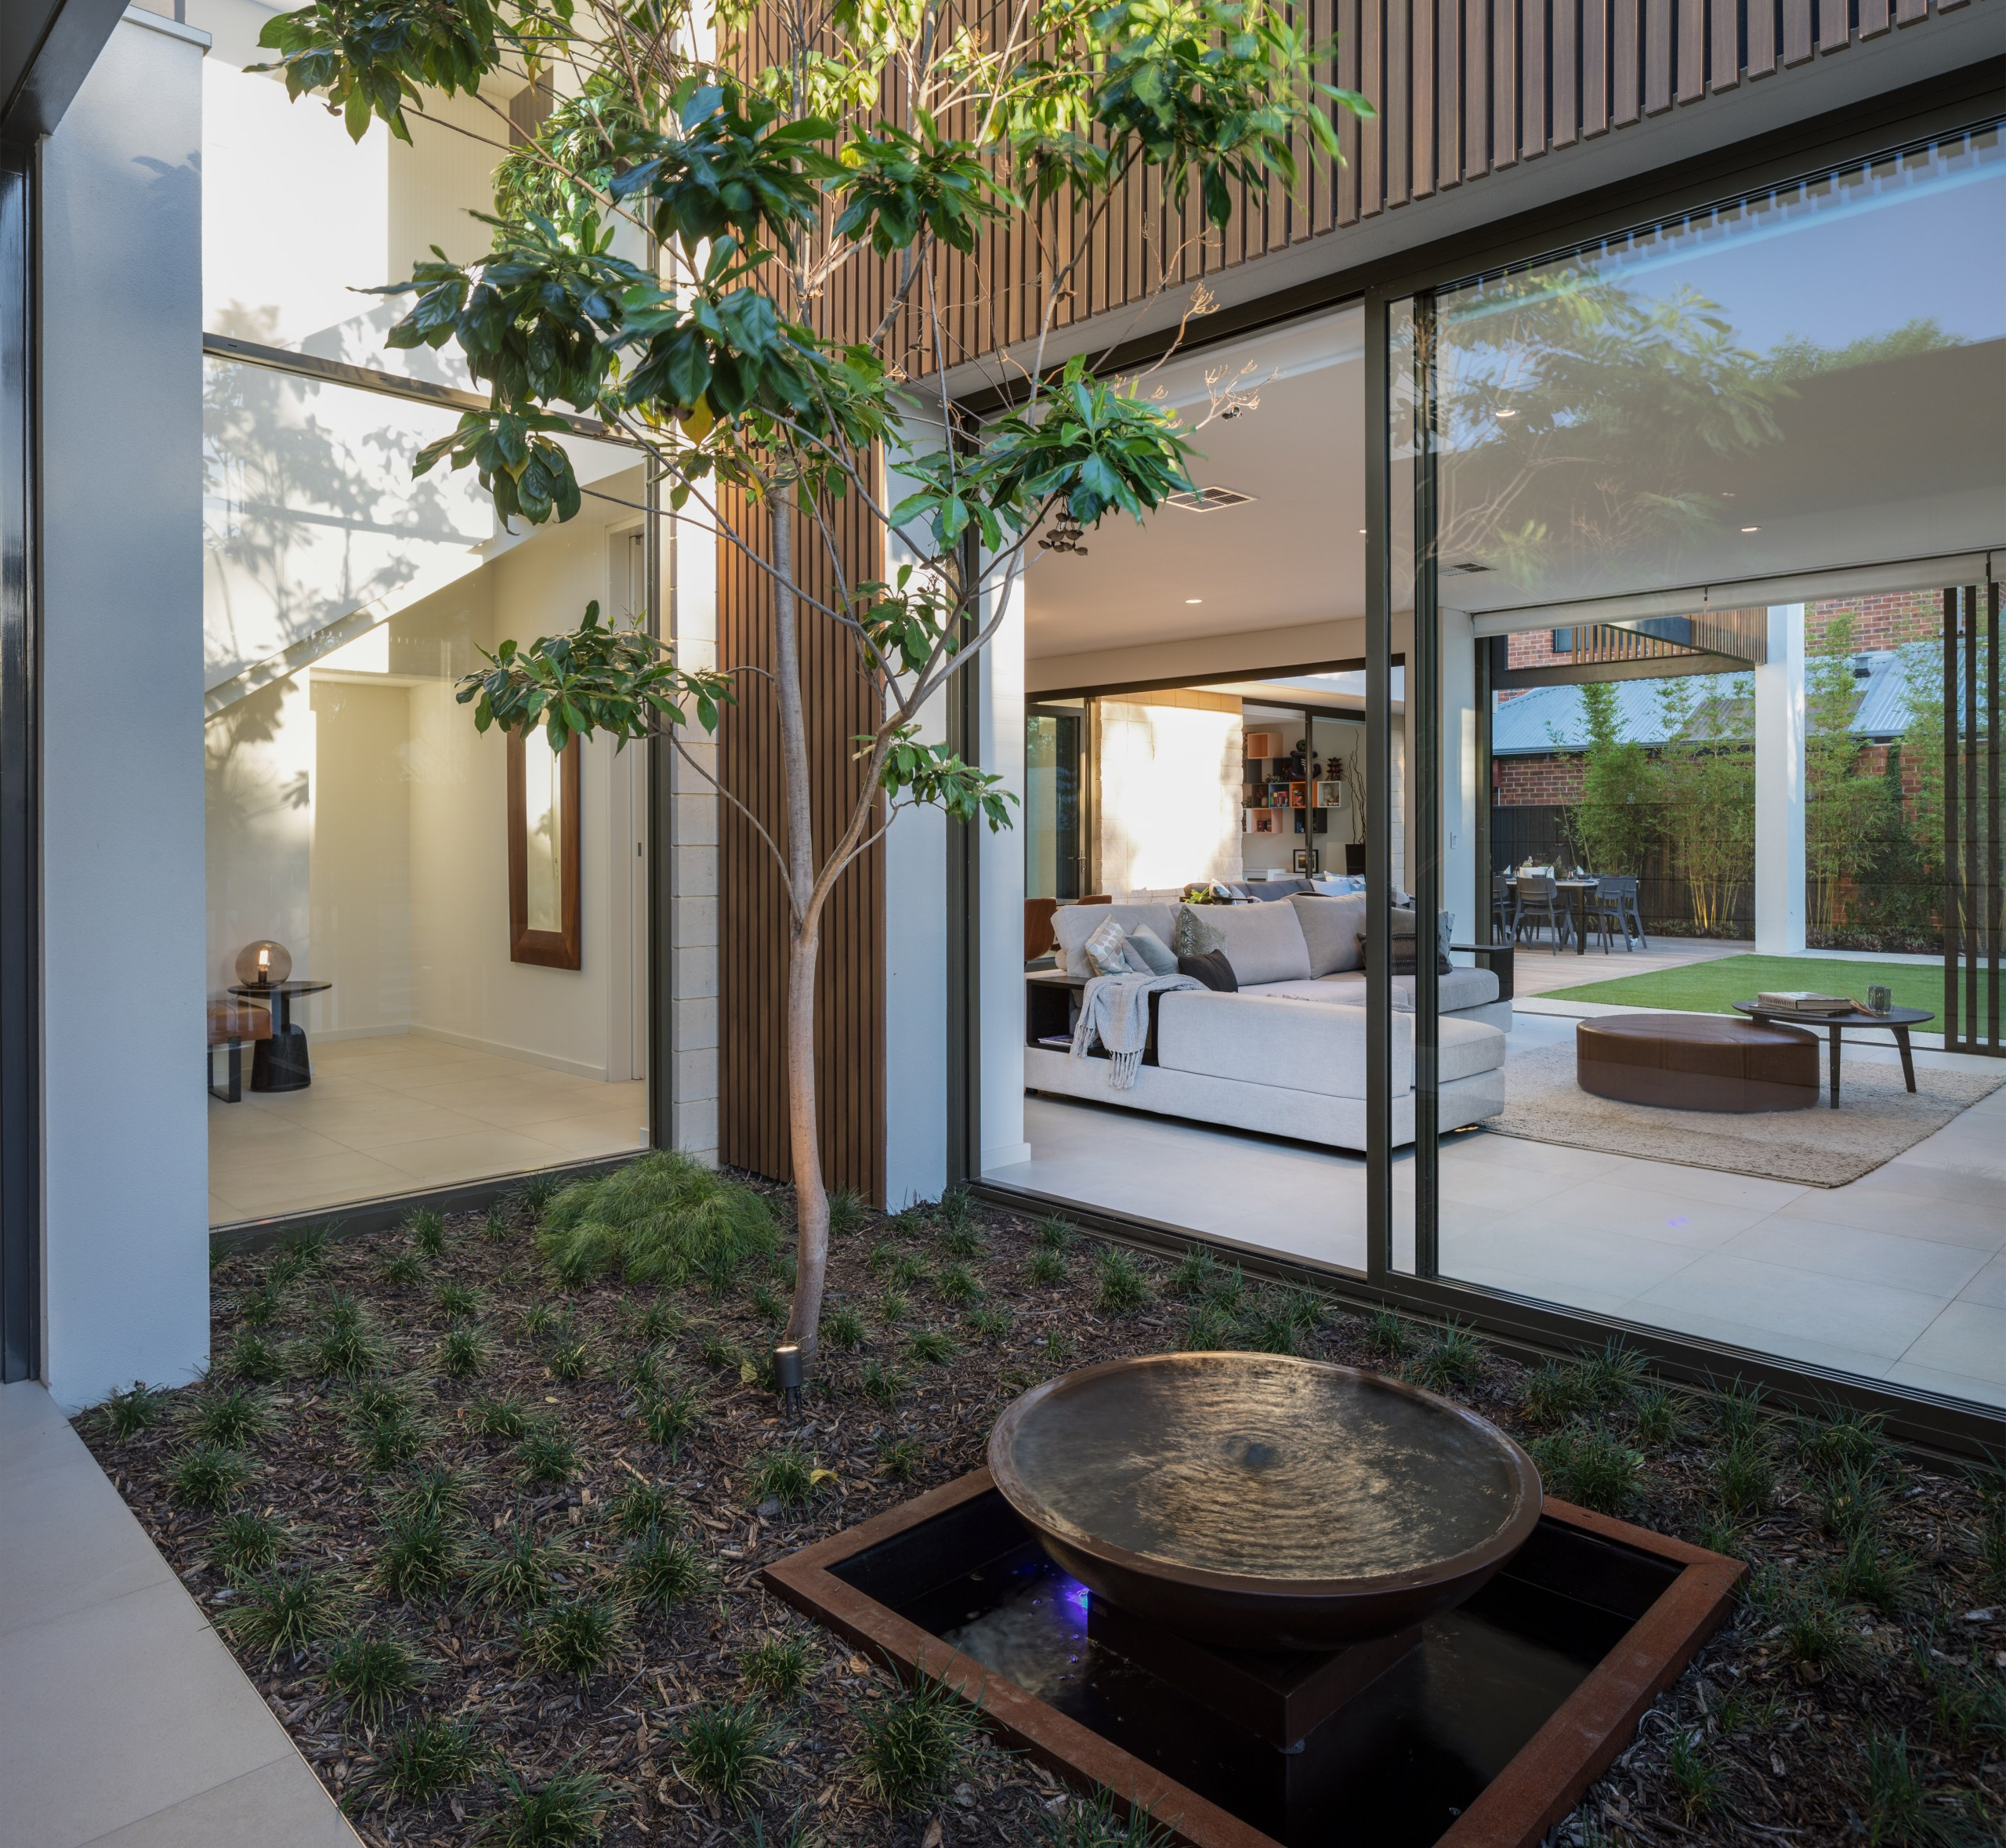 Transparent agenda – approaching the front door, visitors apartment, architecture, backyard, building, courtyard, floor, furniture, home, house, interior design, plant, property, real estate, room, table, tree, gray, black